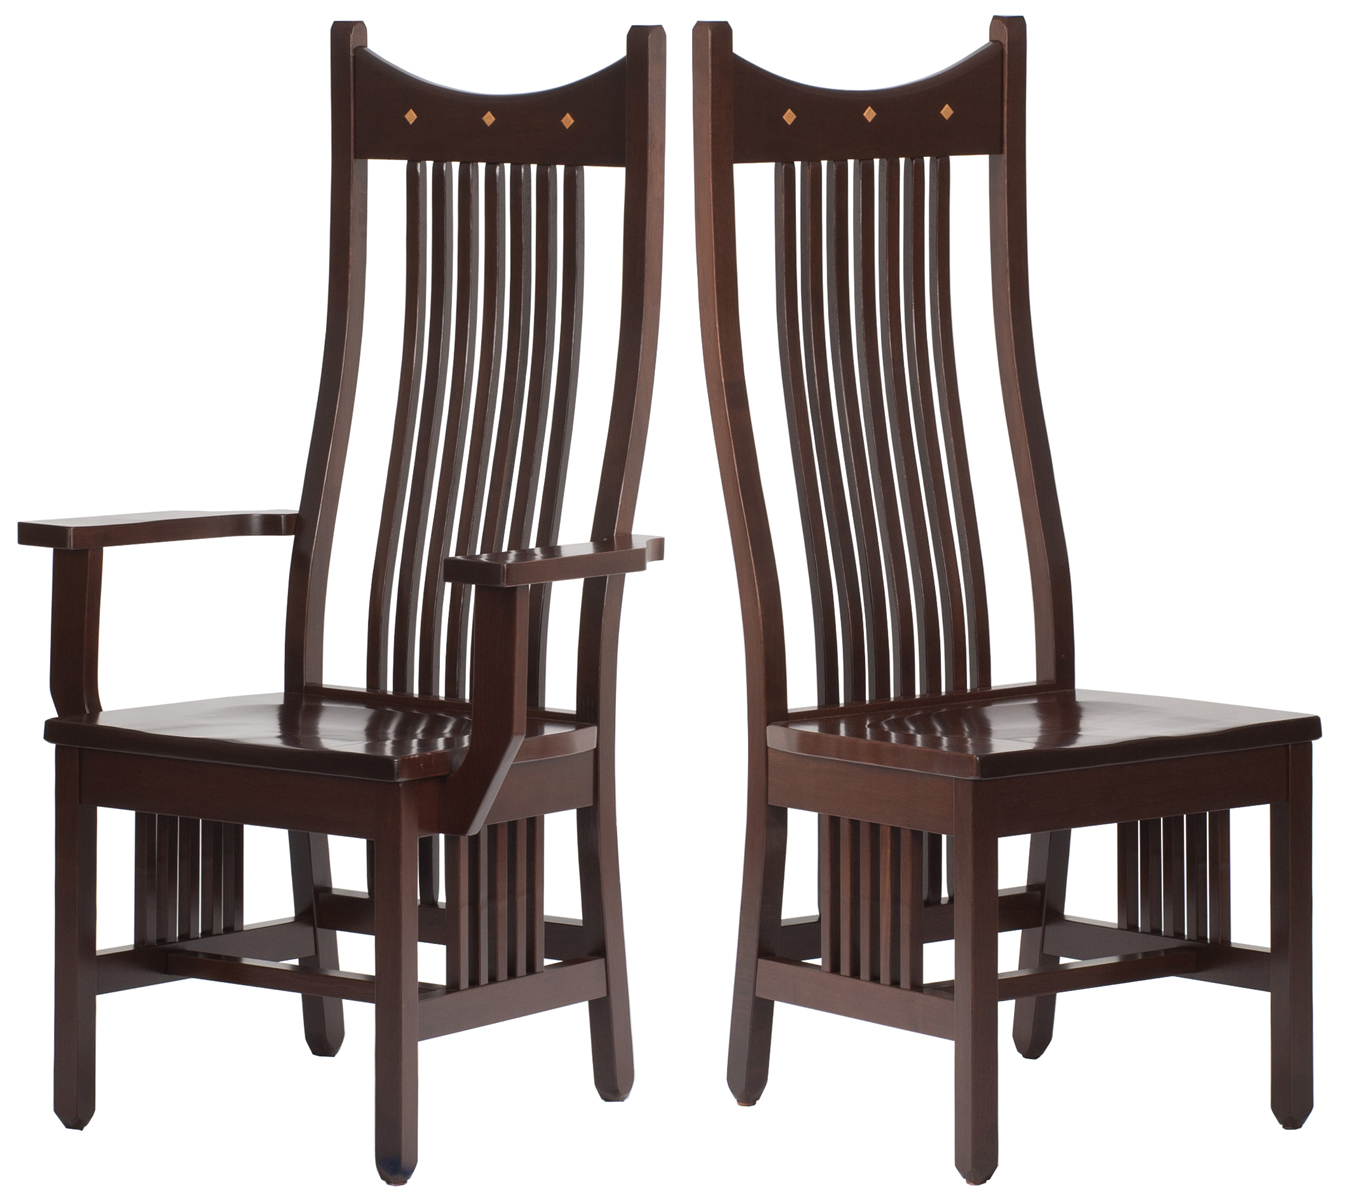 Western Dining Chair | Dining Room Chair in the Western Style